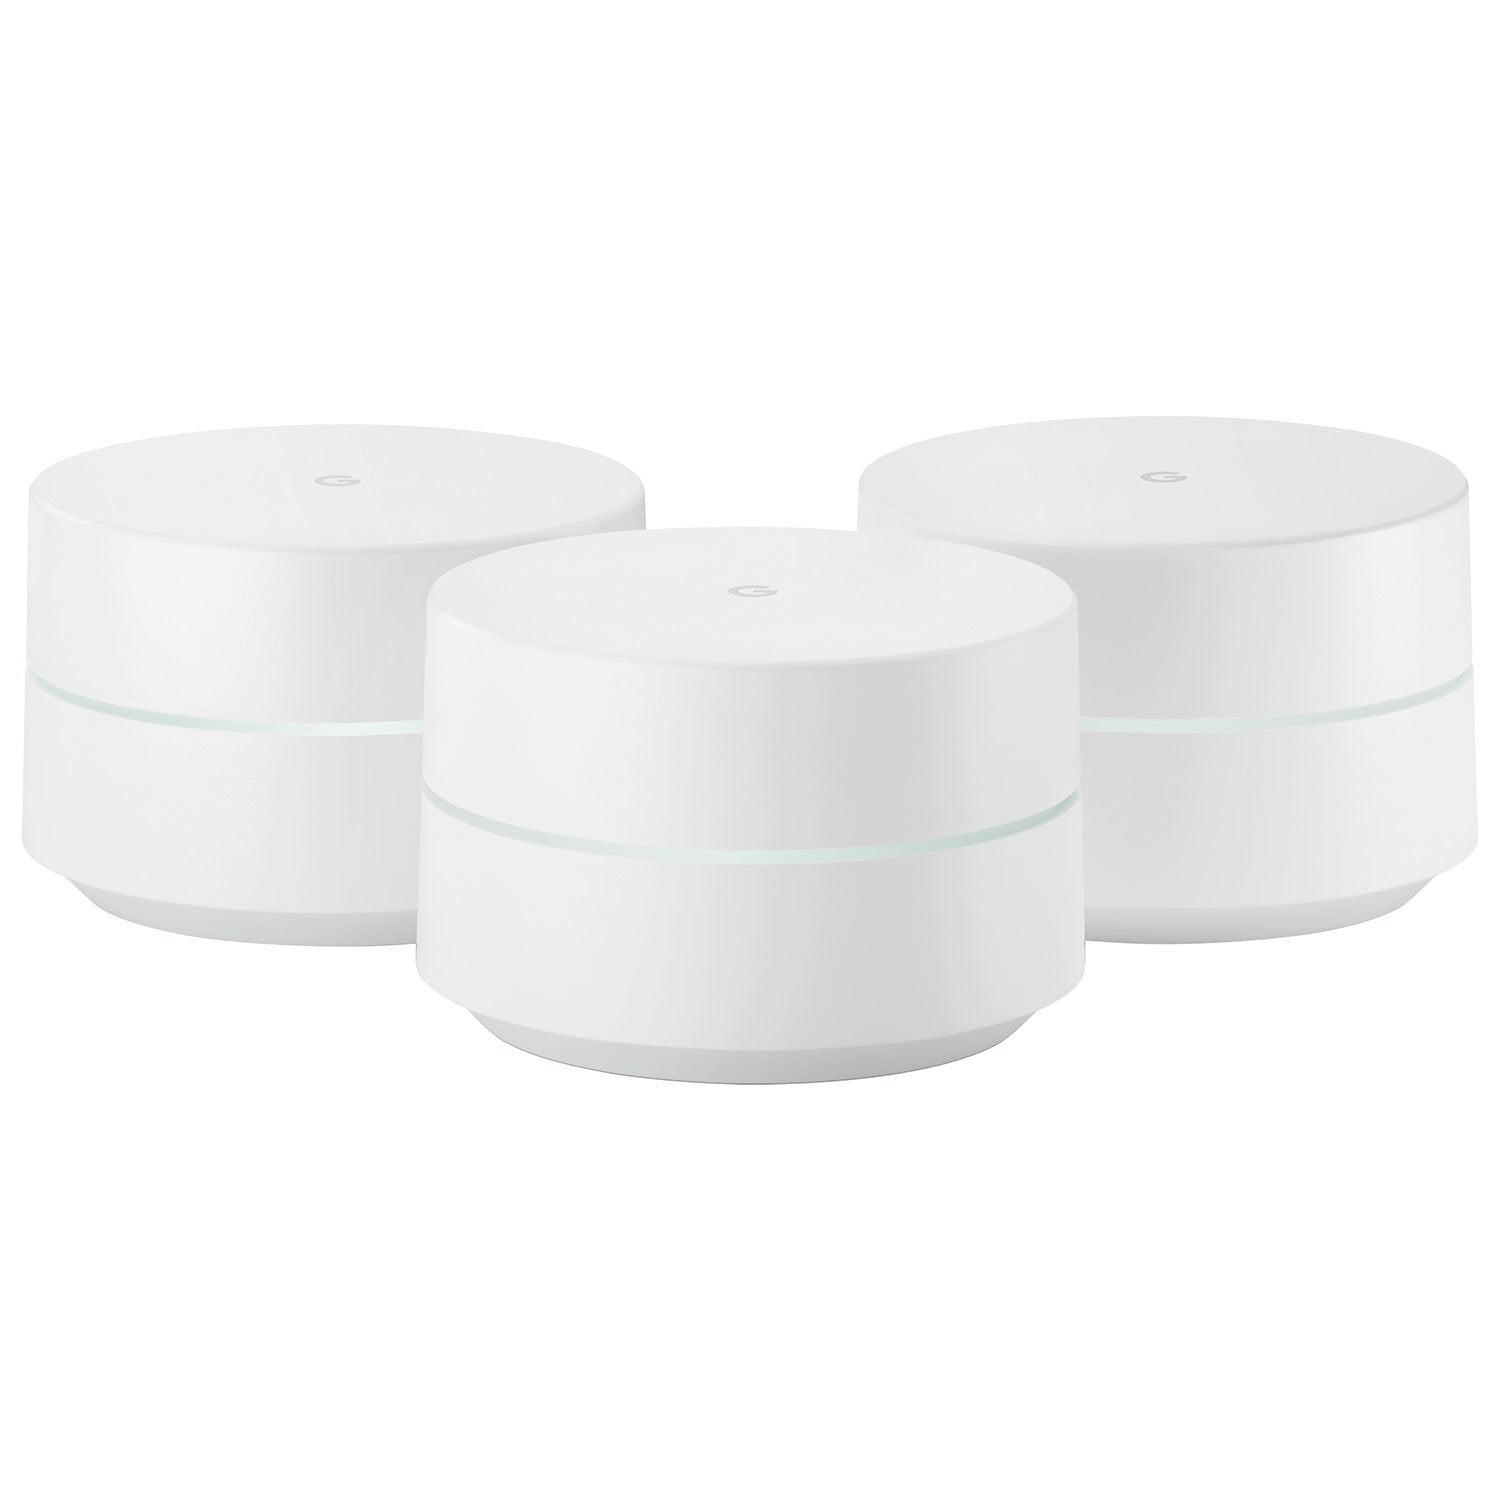 Google Wifi AC1200 Whole Home Mesh Wi-Fi System (NLS-1304-25) - 3 Pack